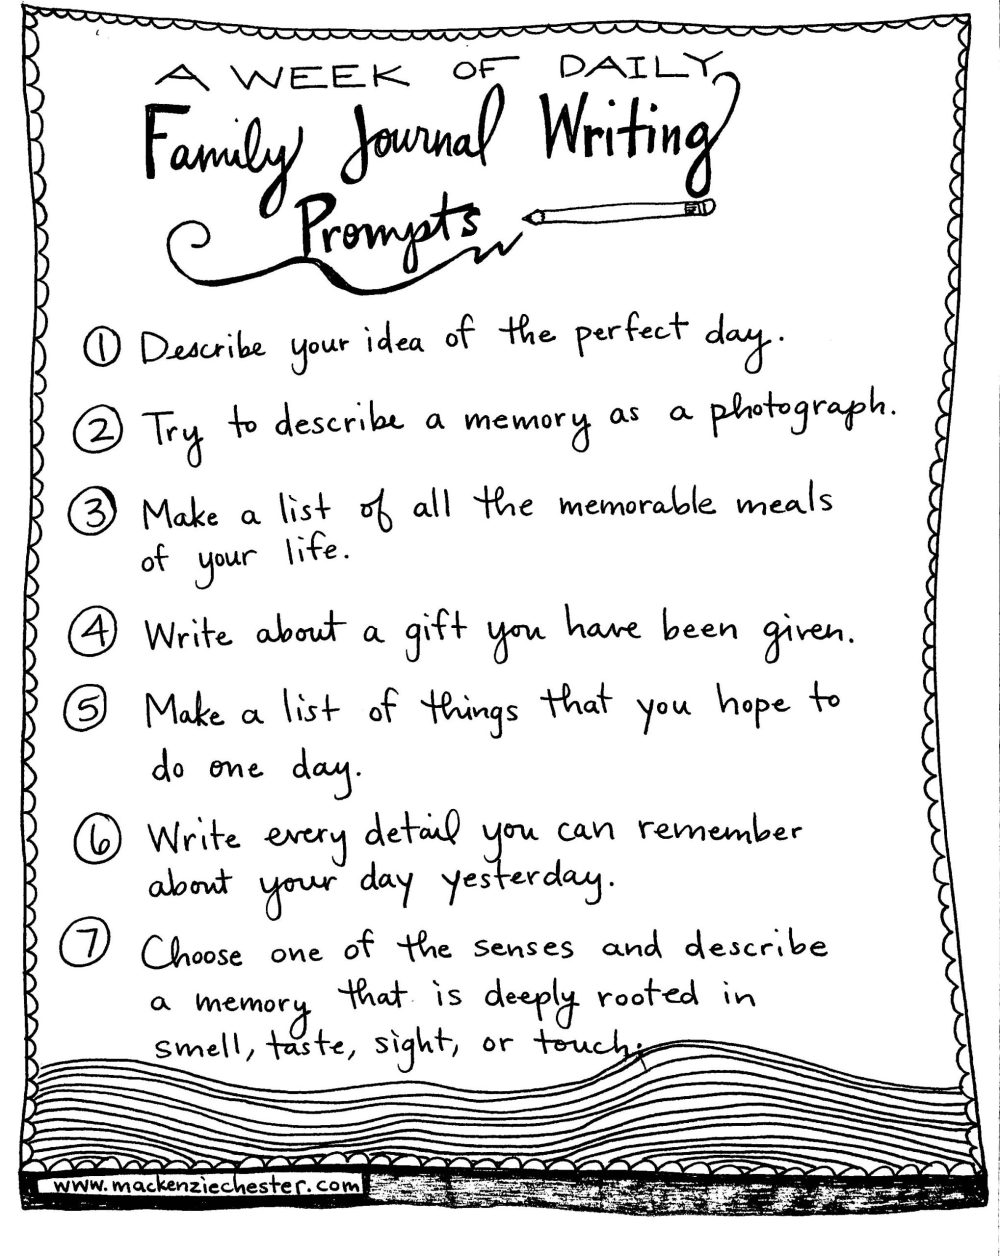 family journal writing prompts, free printable, 7 days of free writing prompts, family time, homeschool